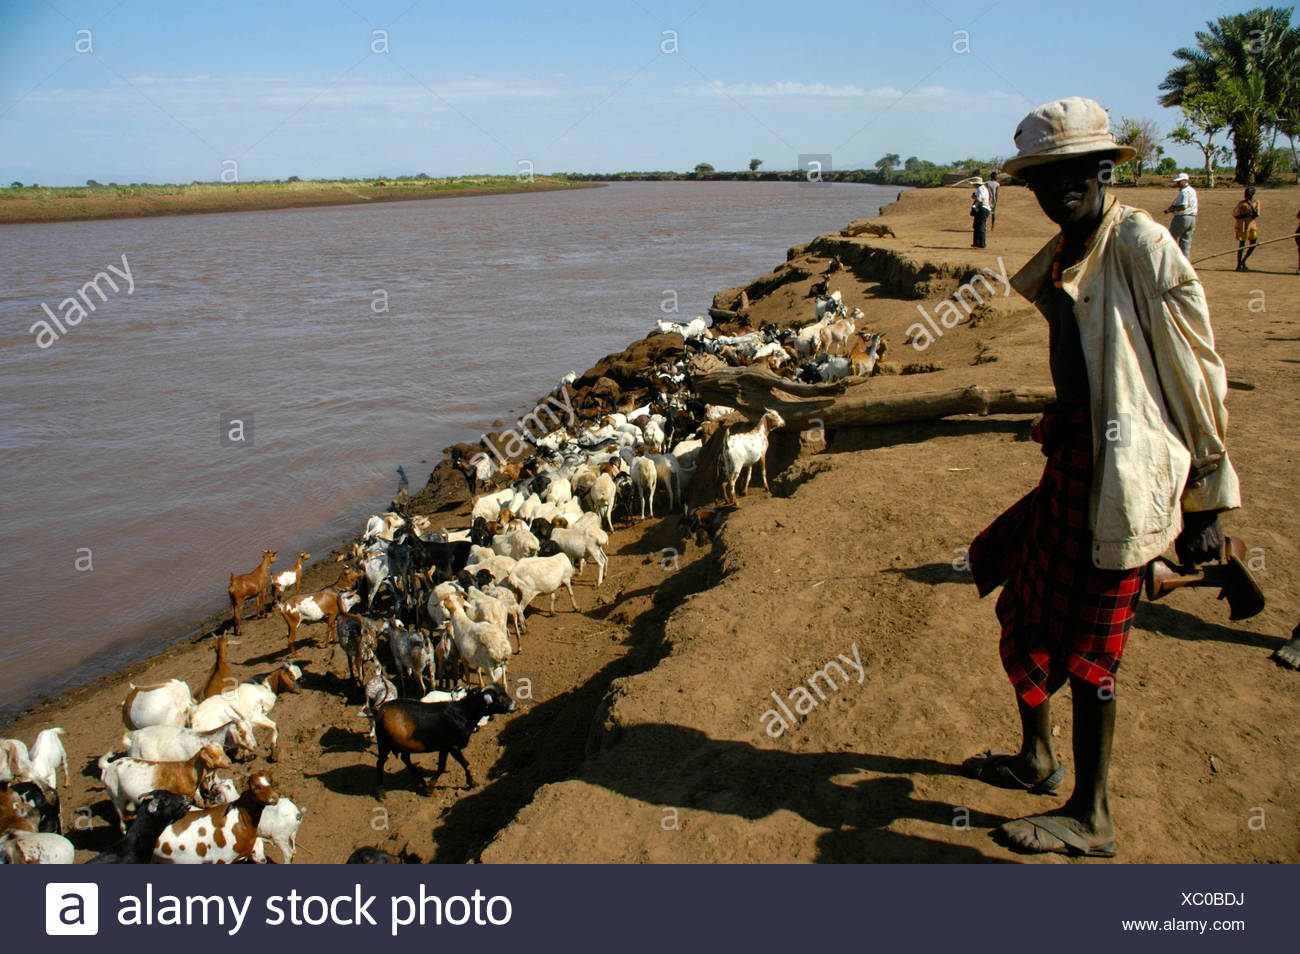 Shepard with goats at Omo River, Dashenesh people, Ethiopia, Africa - Stock Image